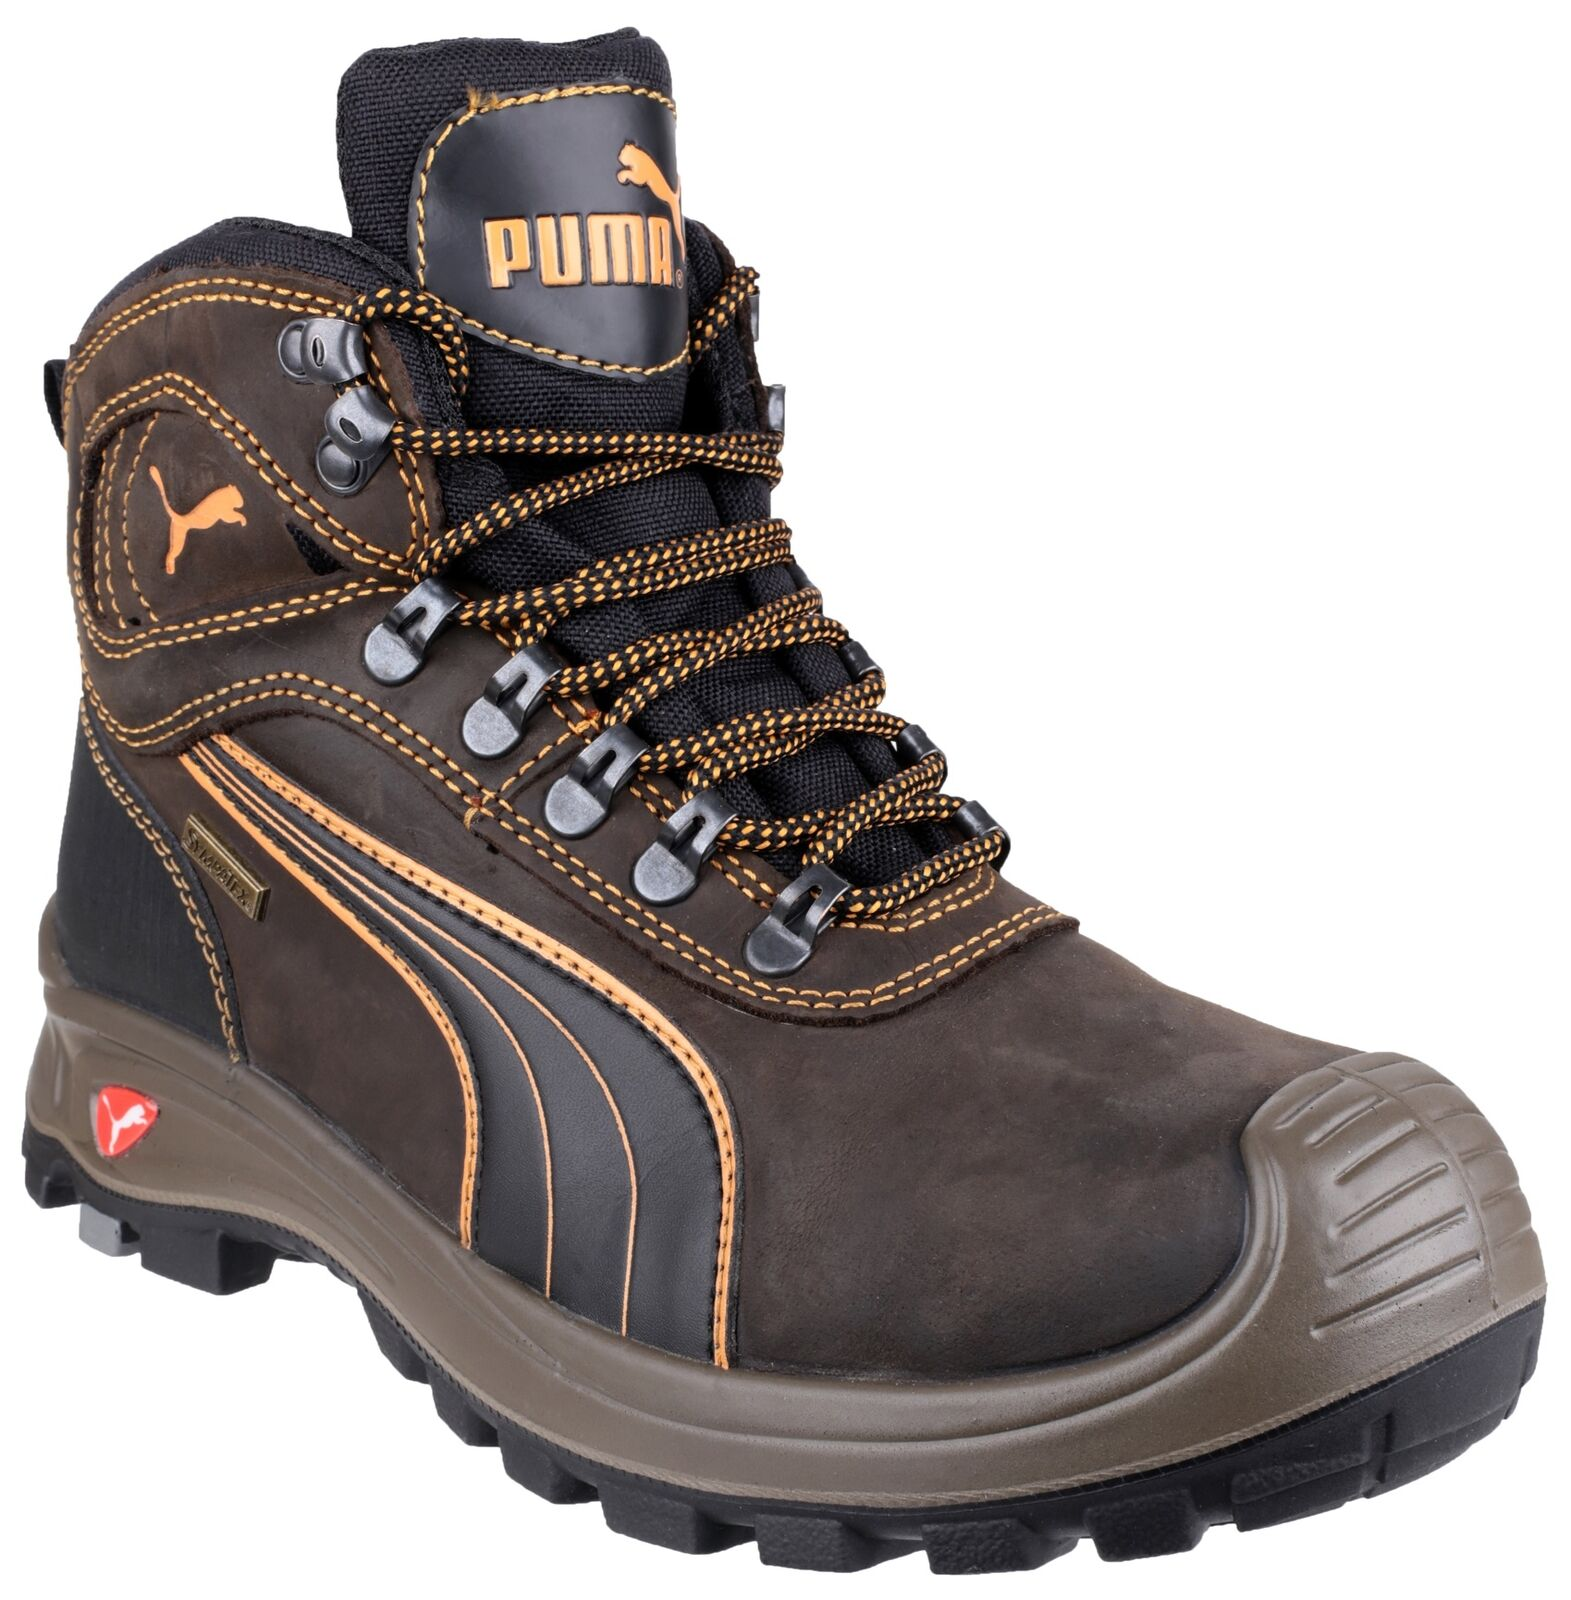 Puma Sierra Nevada Mid Safety Work Boots 630220 Brown S3 Sizes 6-13 Composite